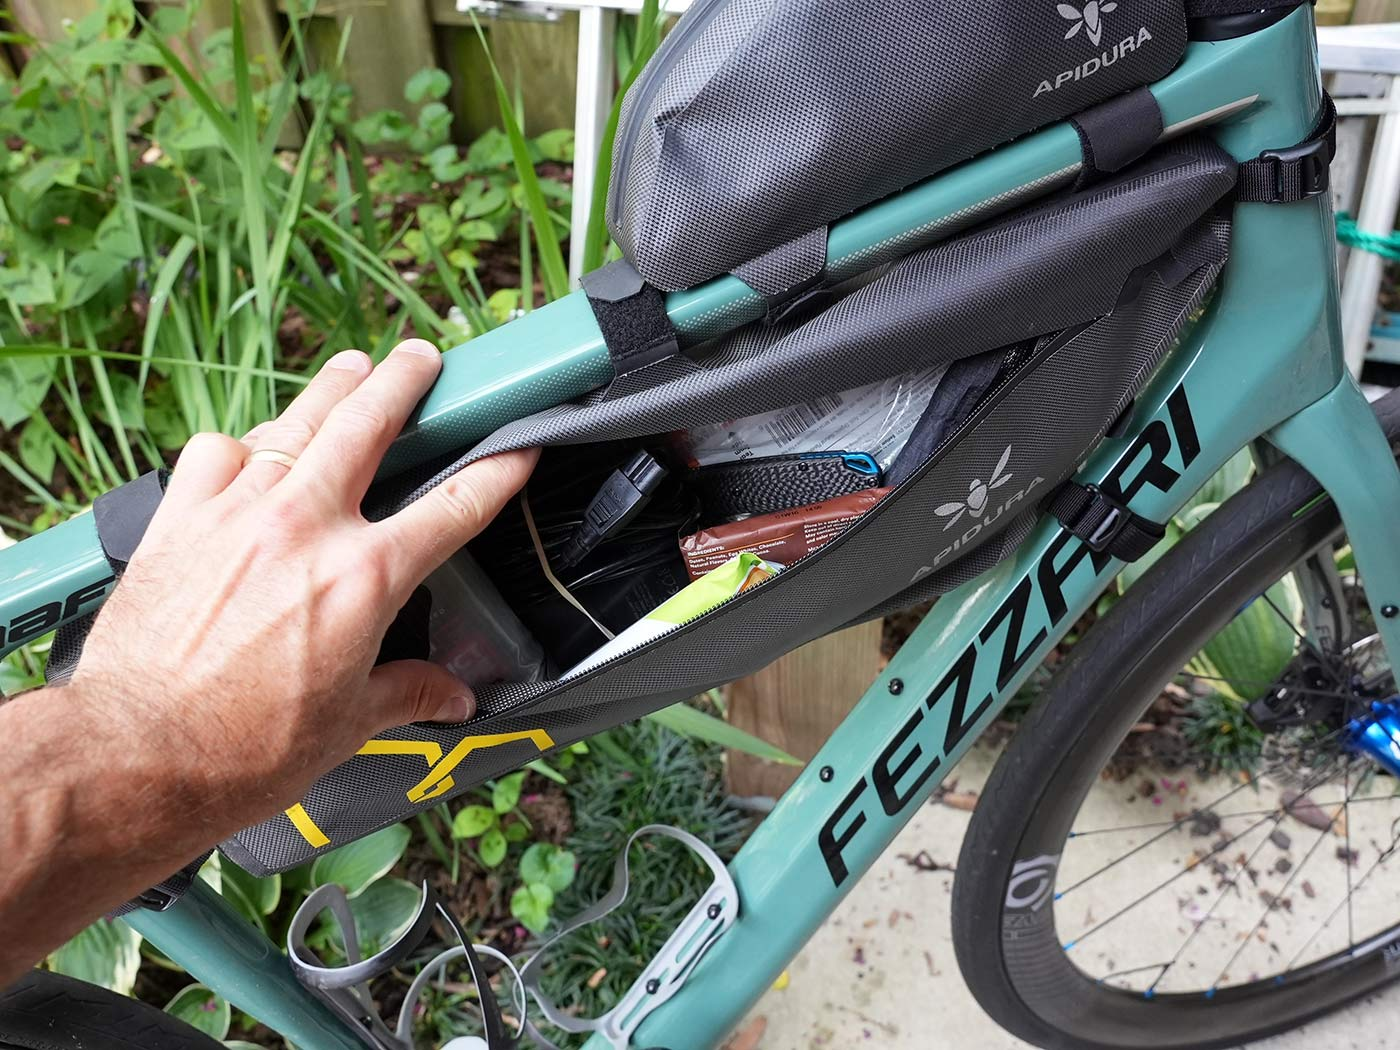 apidura expedition frame pack shown open on right side